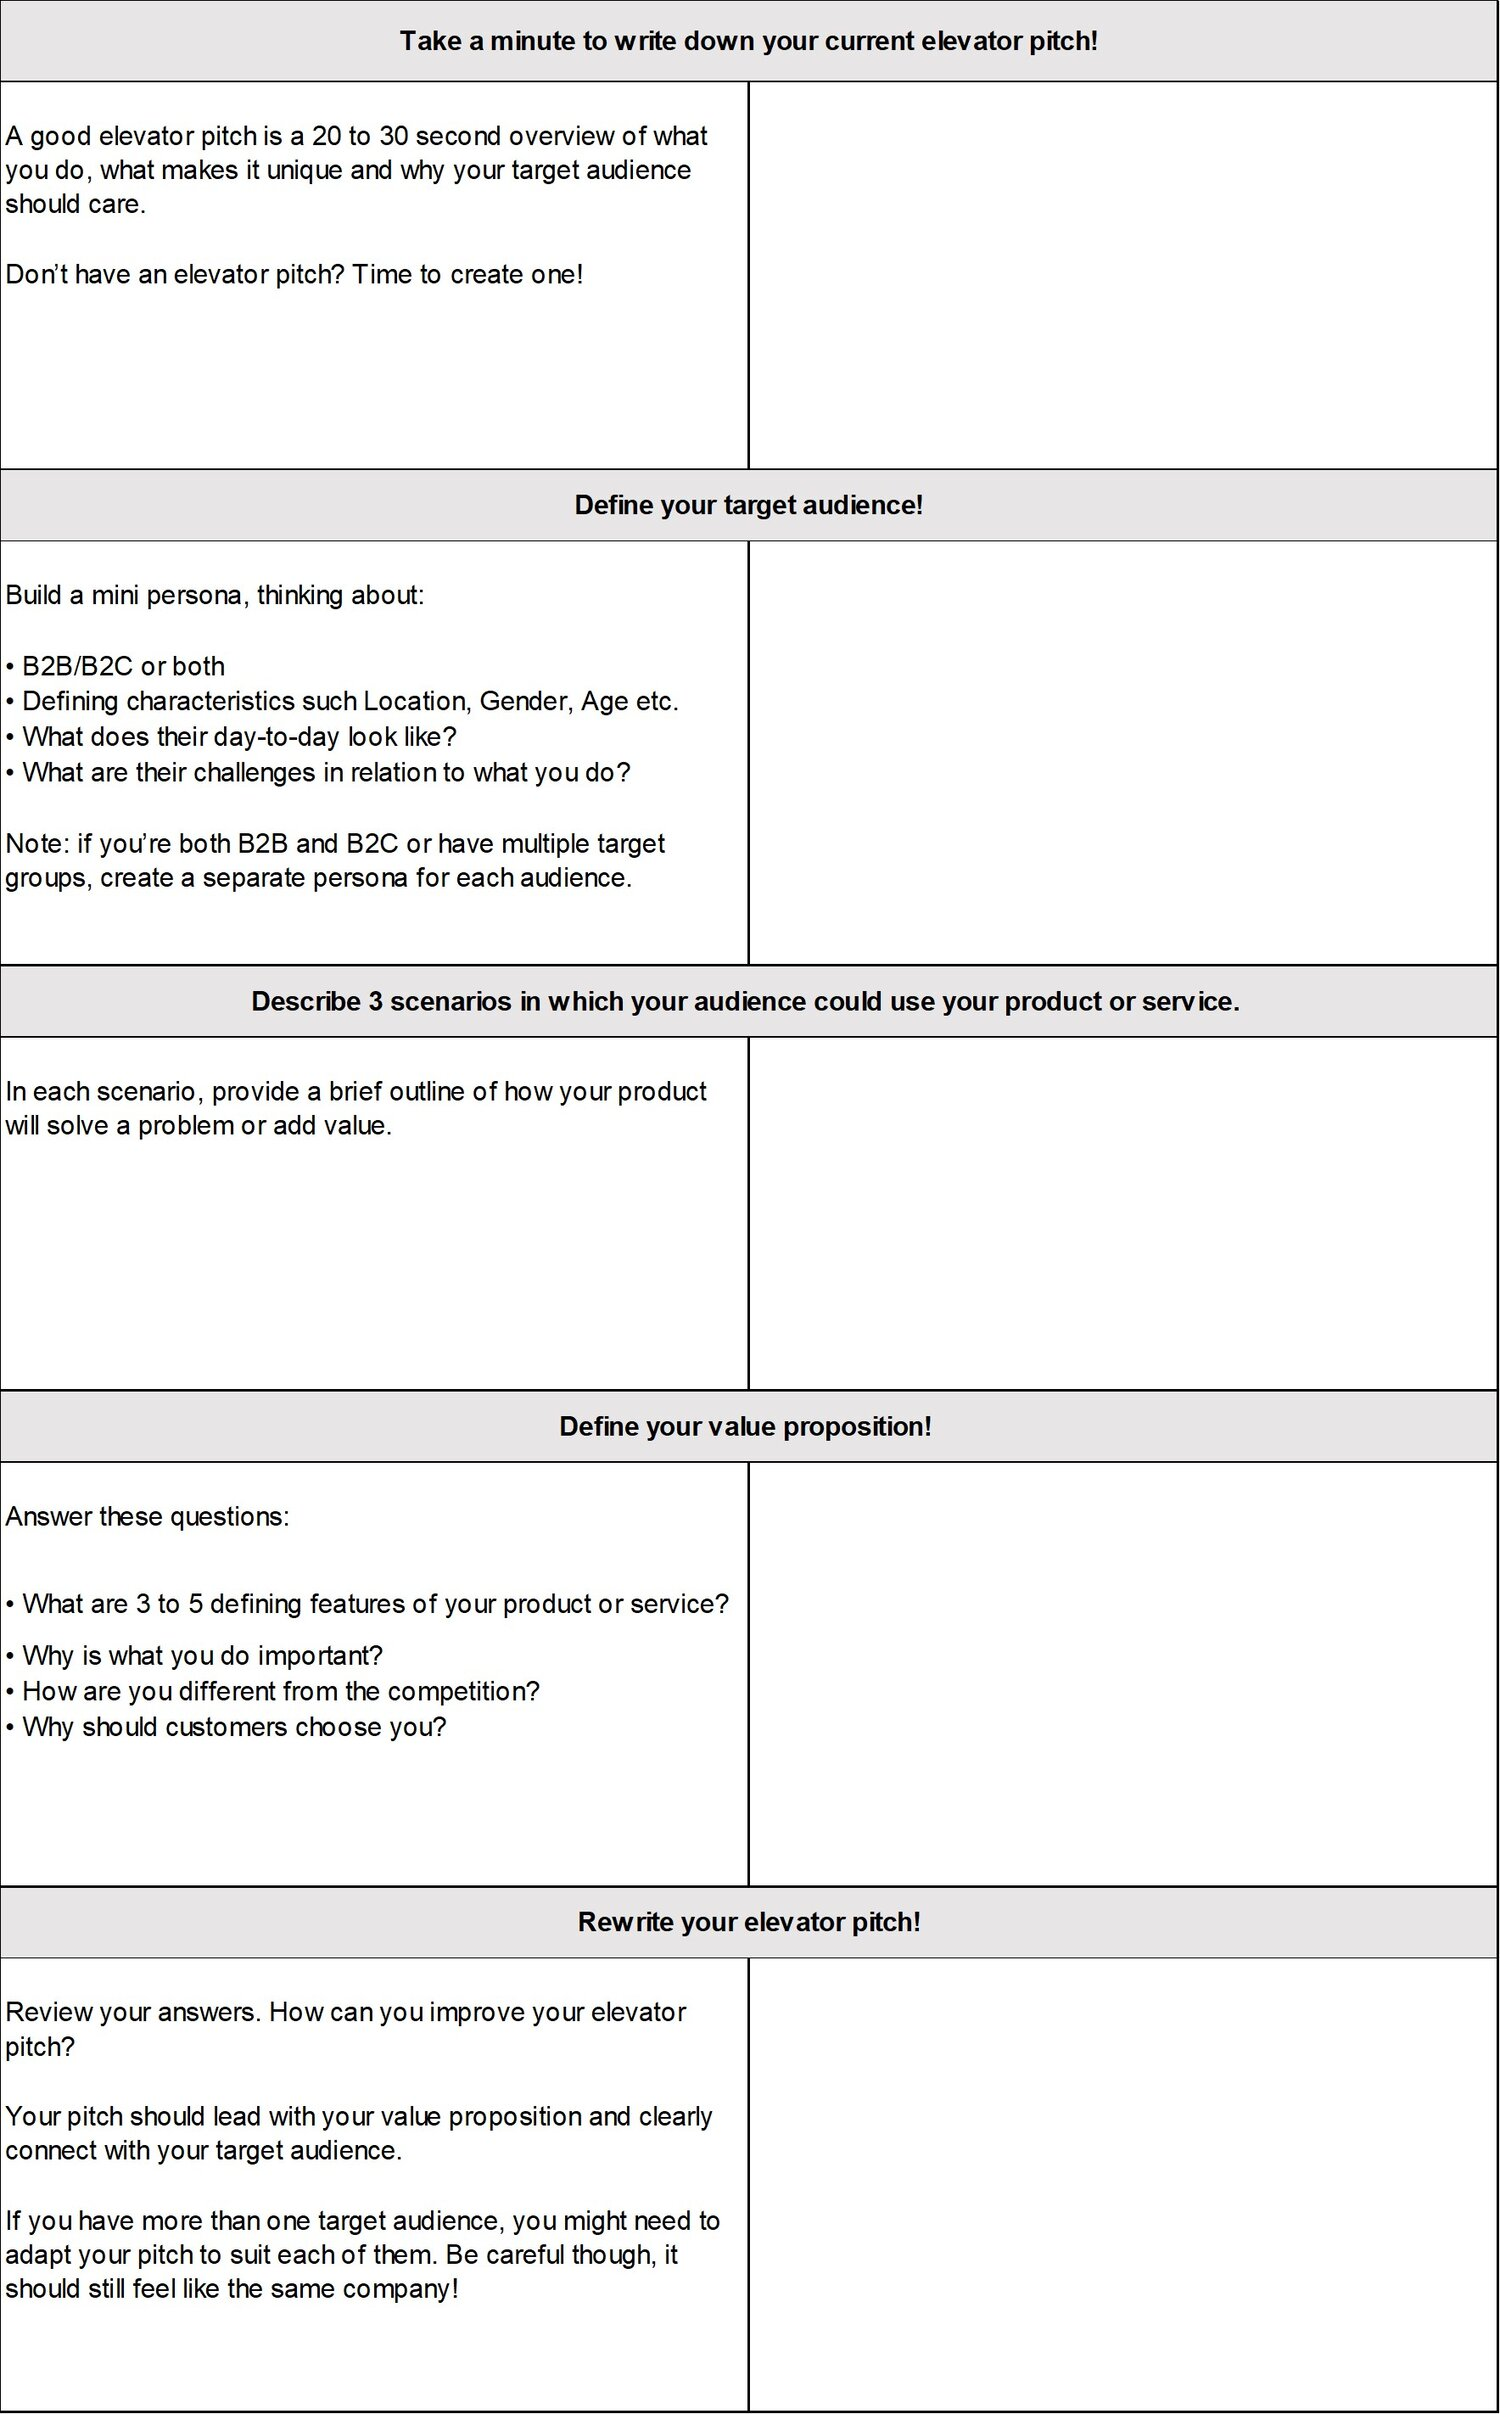 The EMMS Elevator Pitch Worksheet